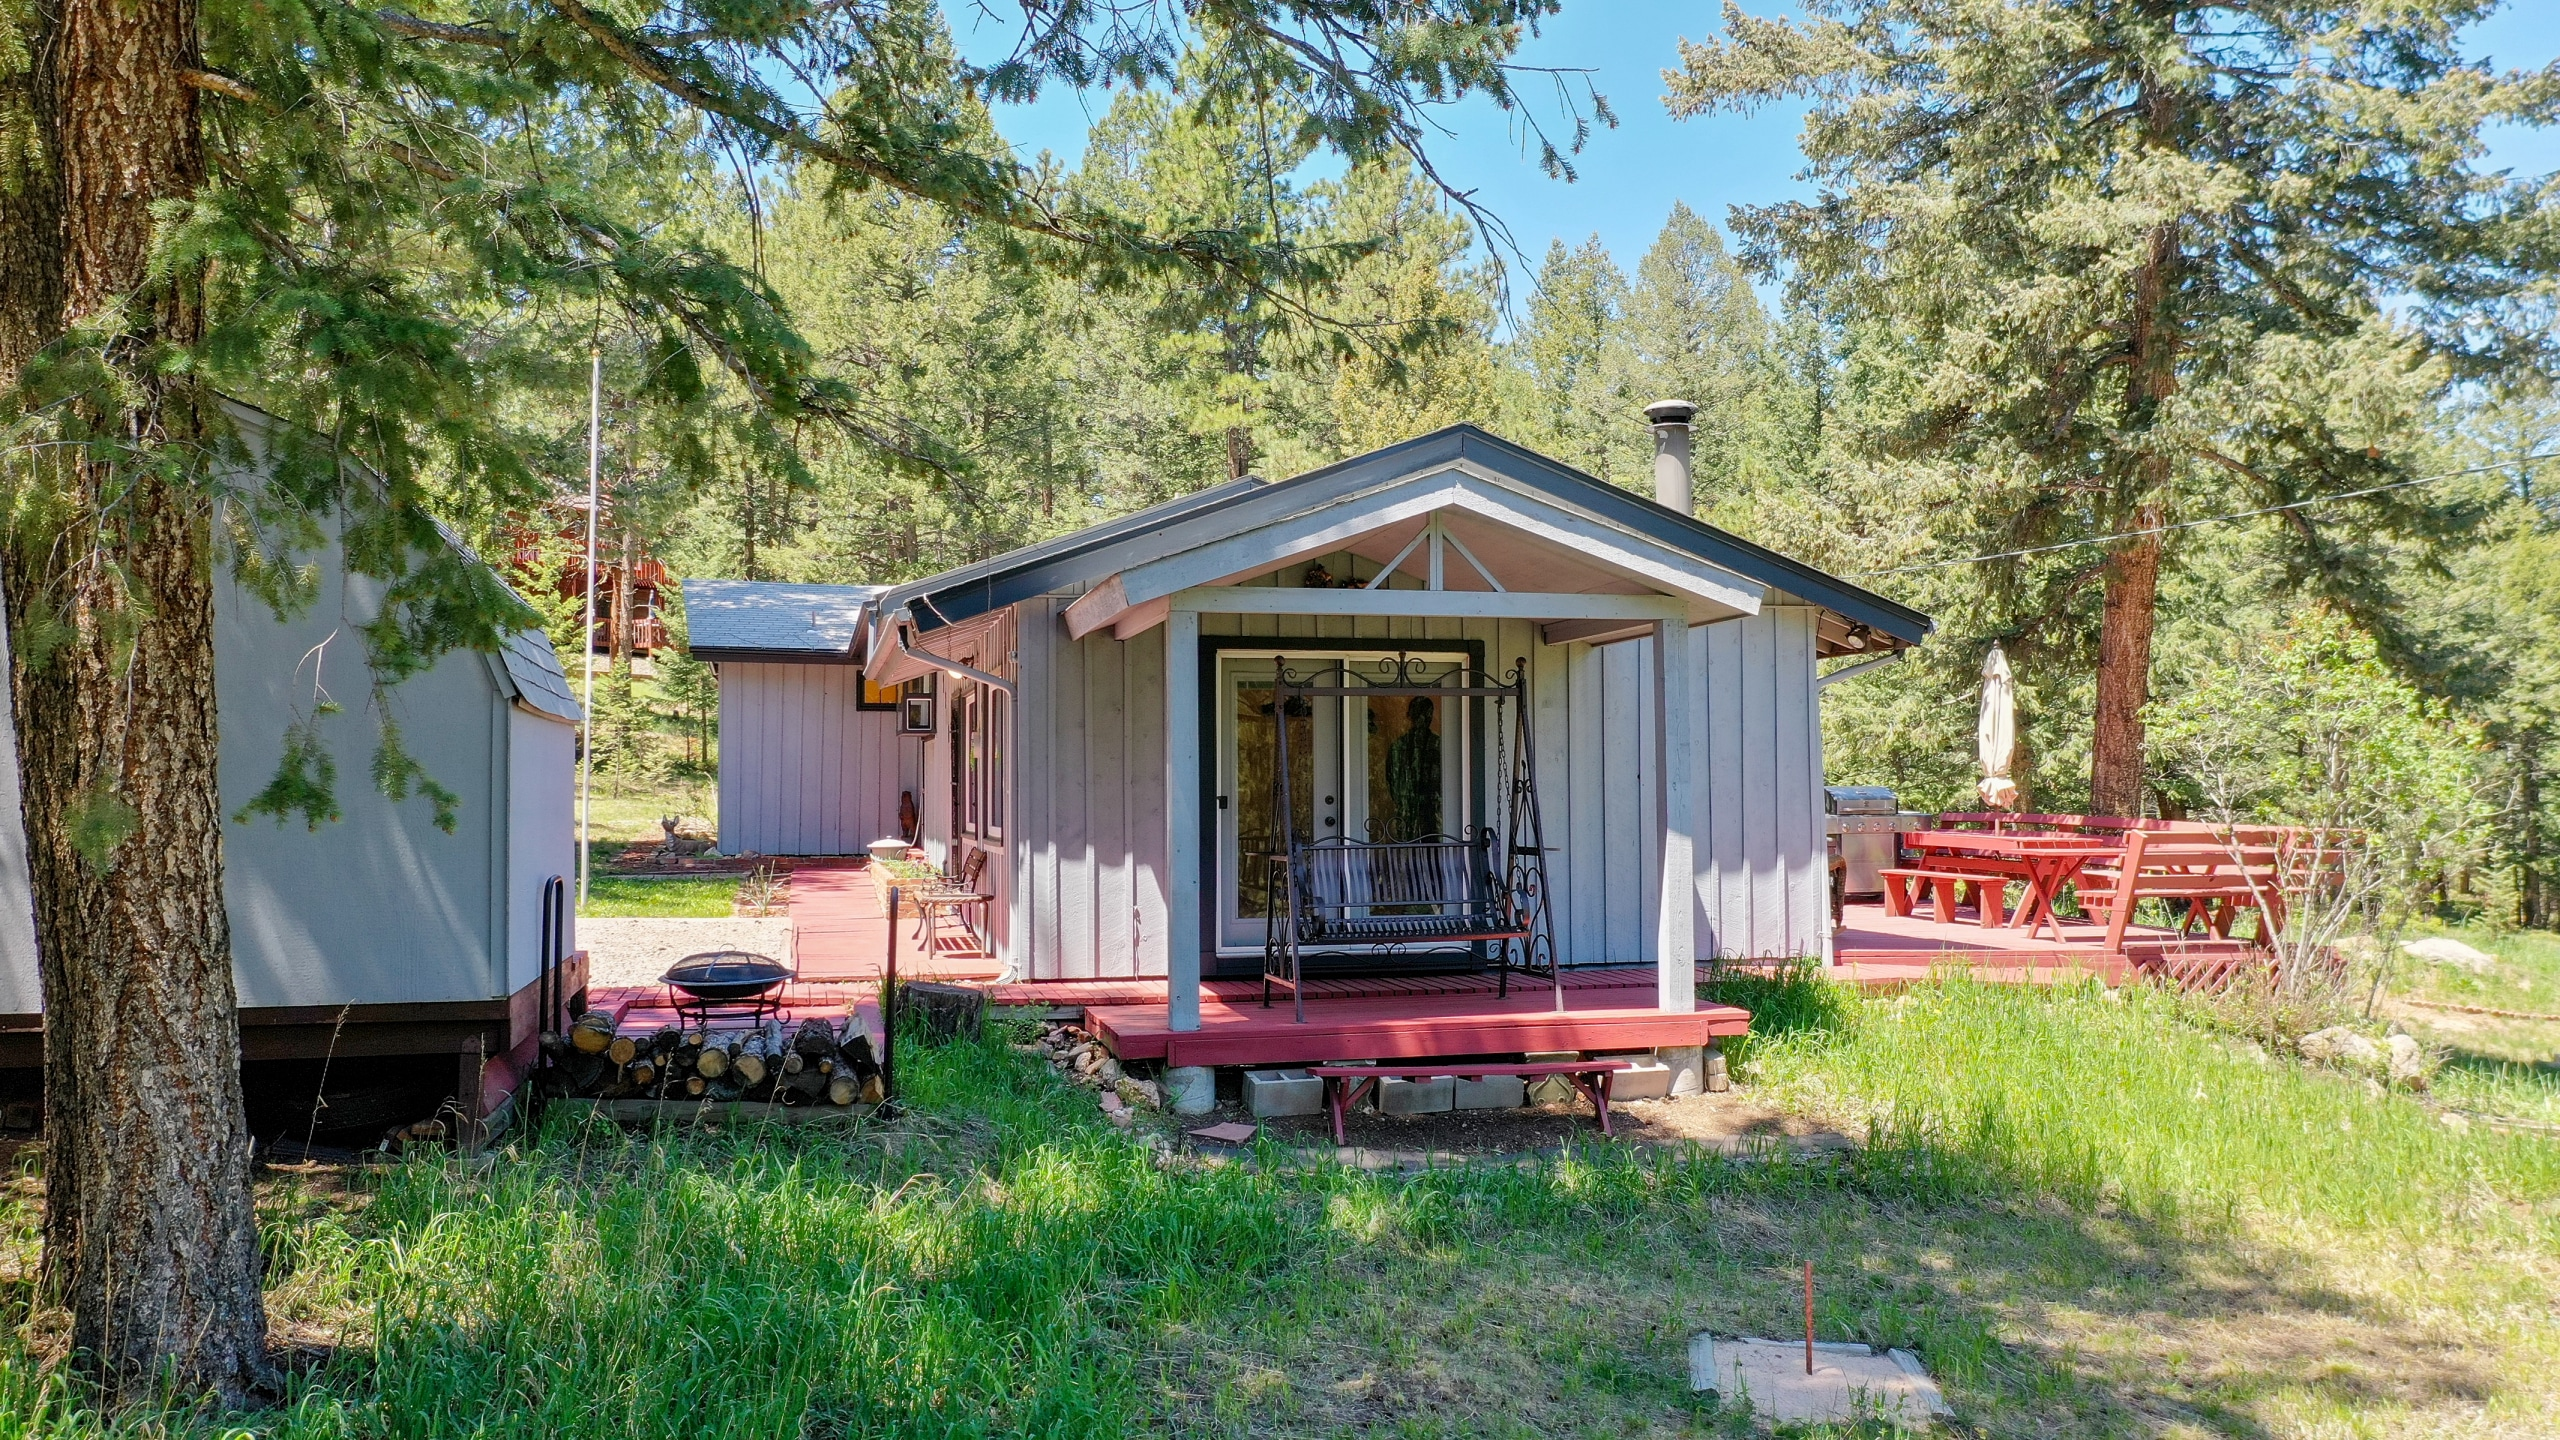 Evergreen home for sale with covered porch swing